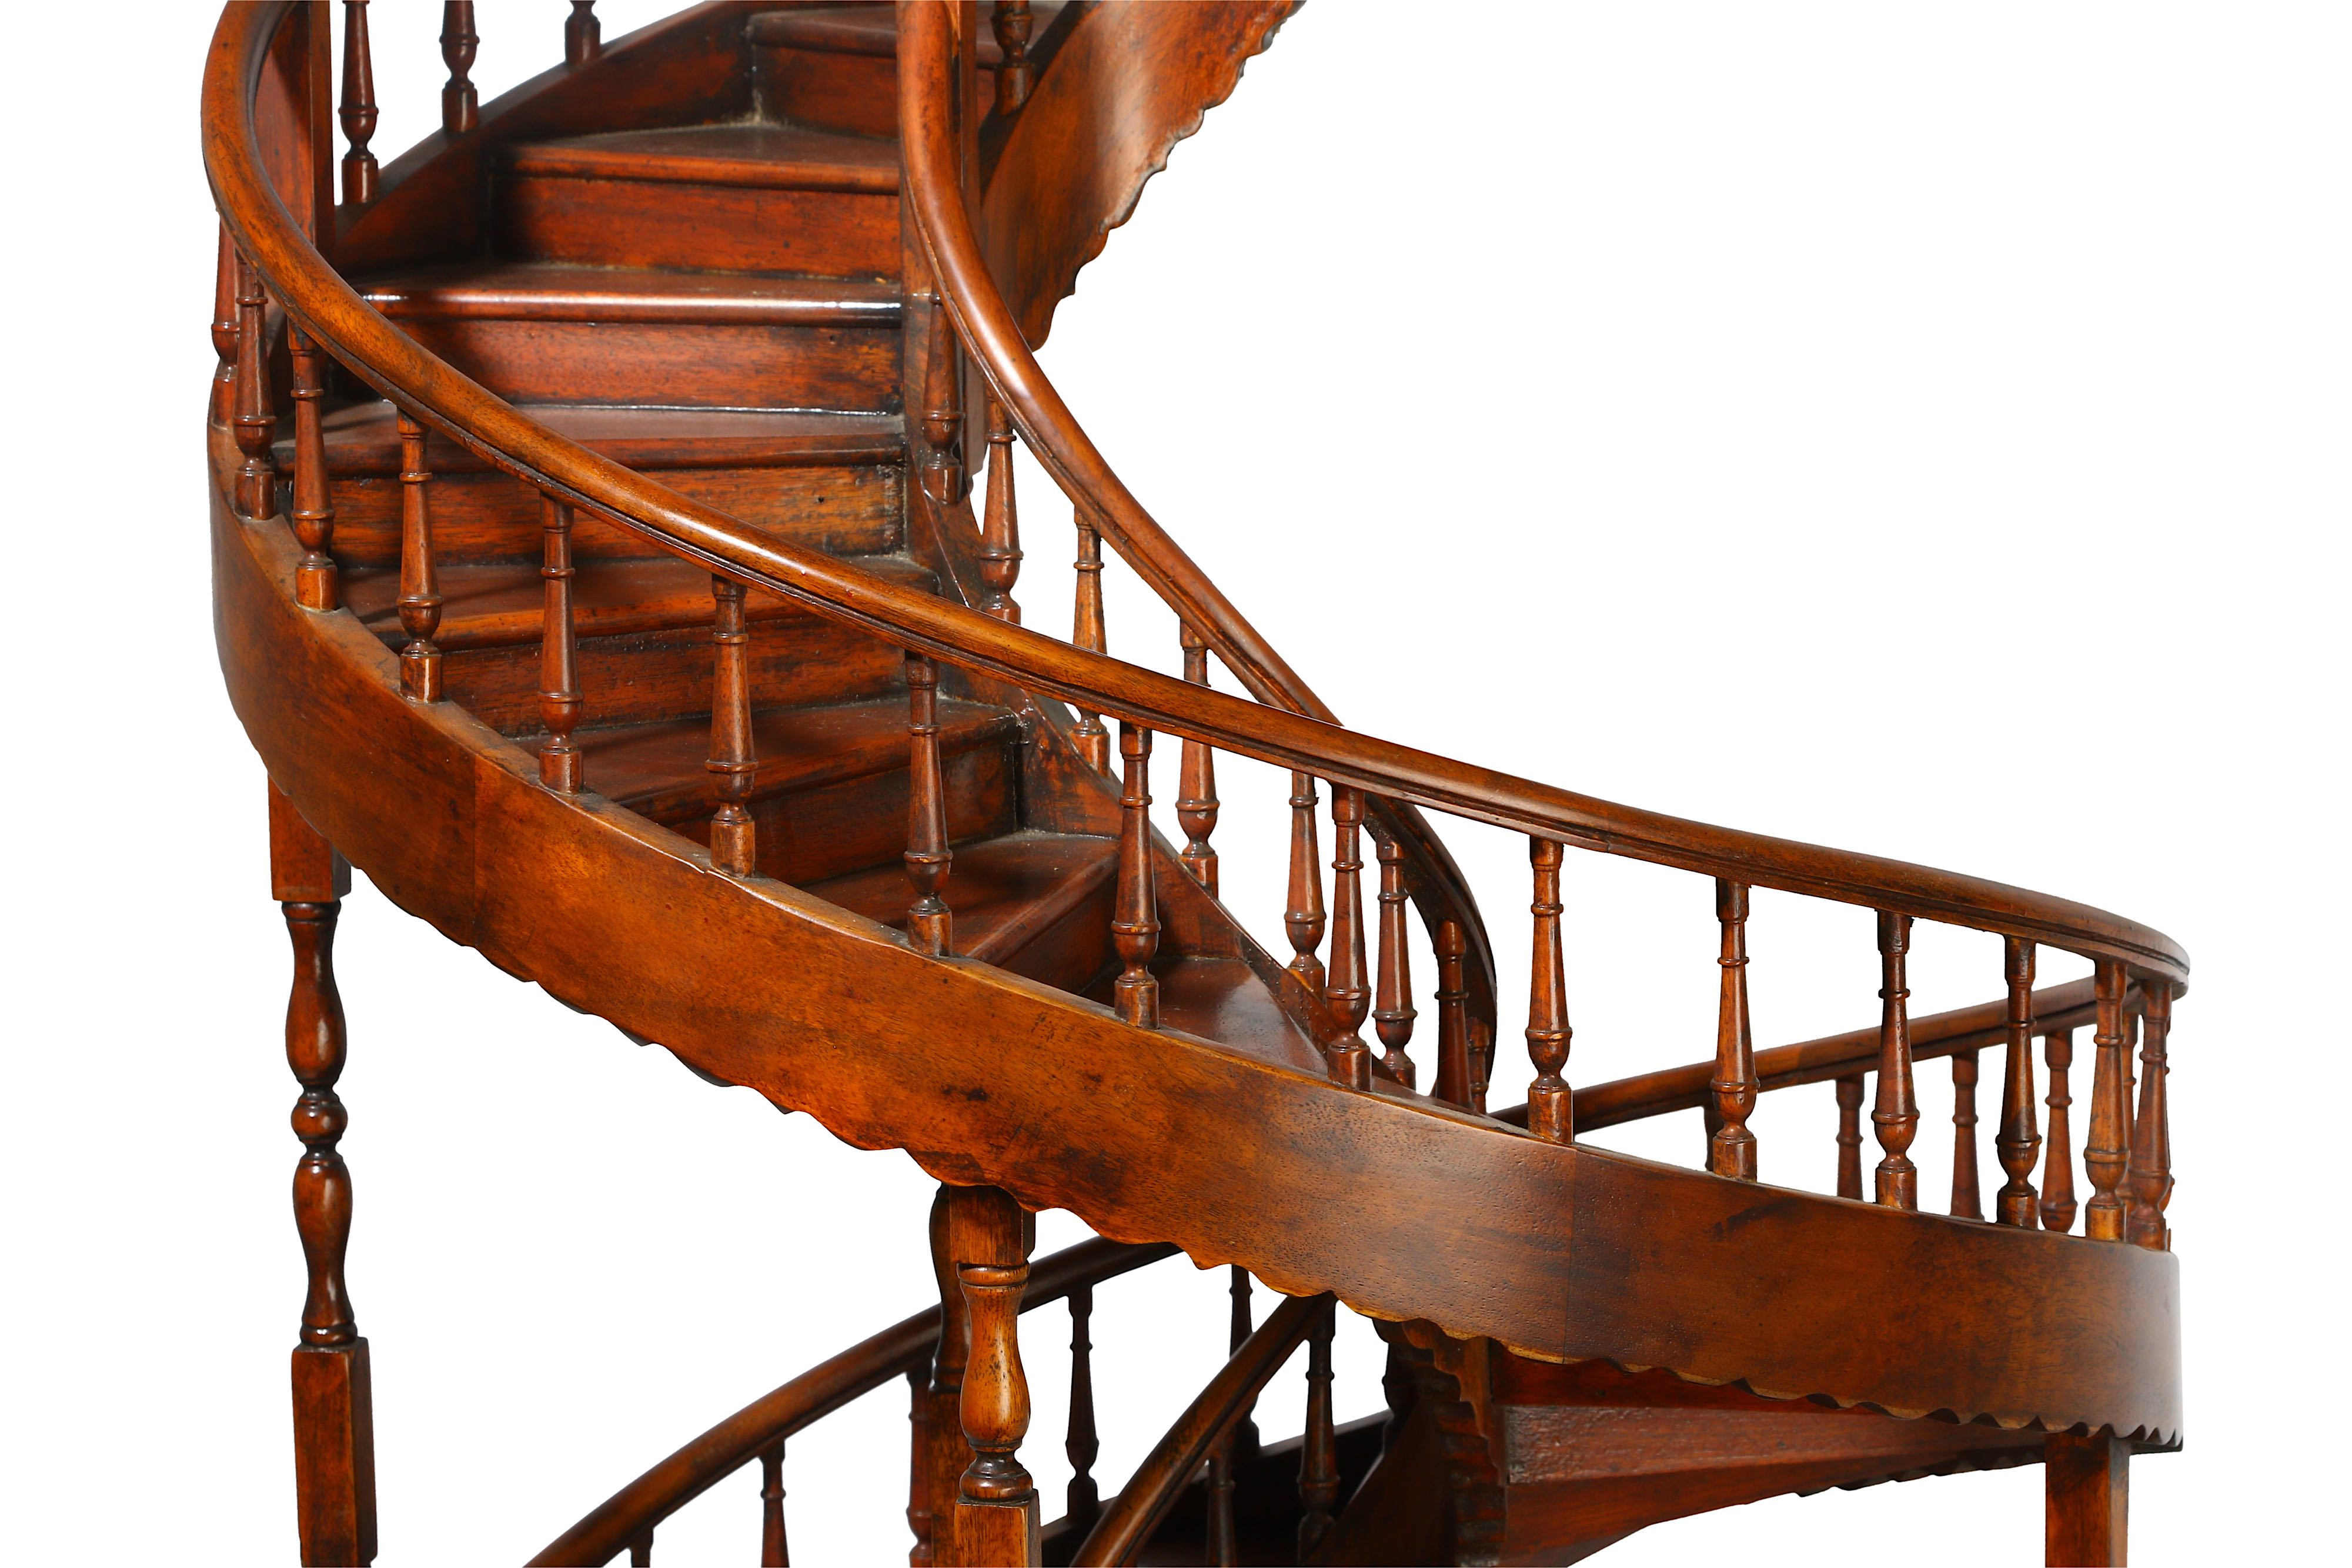 A LARGE EARLY 20TH CENTURY MAHOGANY APPRENTICE'S ARCHITECTURAL MODEL OF A SPIRAL STAIRCASE - Image 3 of 9